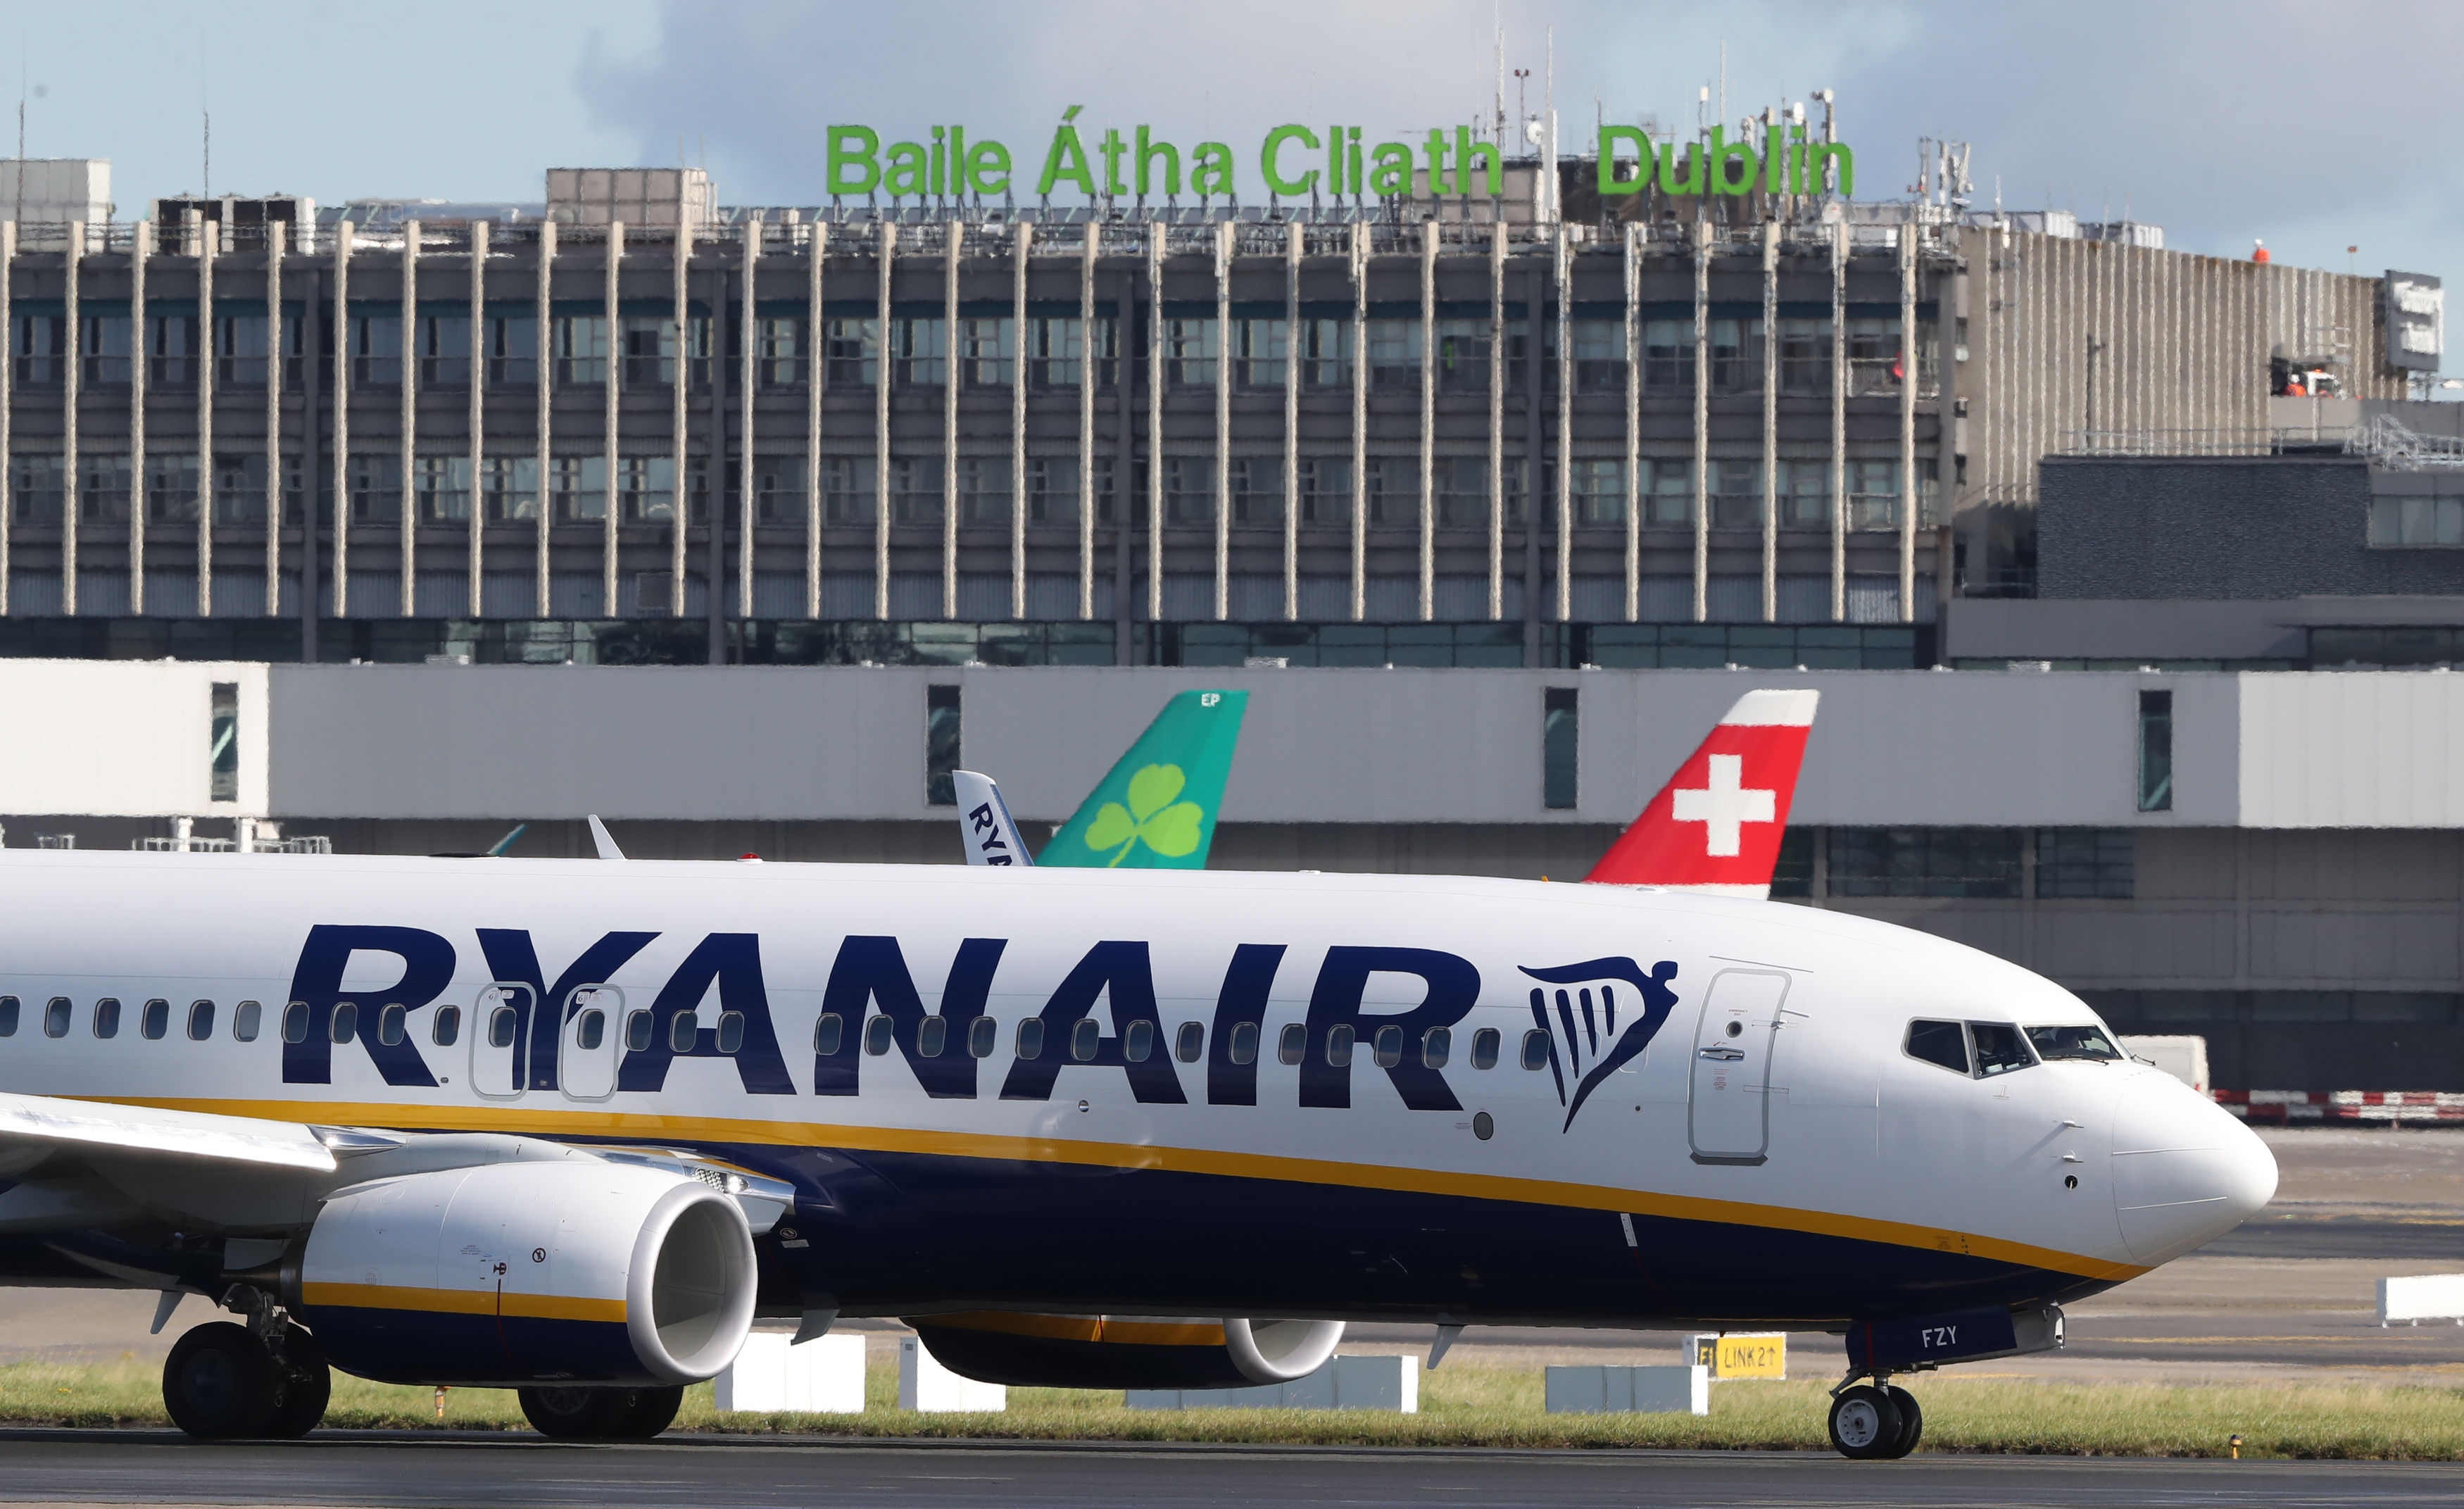 A Ryanair jet at Dublin Airport, as the airline has extended its flight cancellation plan in a move that will hit 400,000 customers. (Niall Carson/PA Wire)